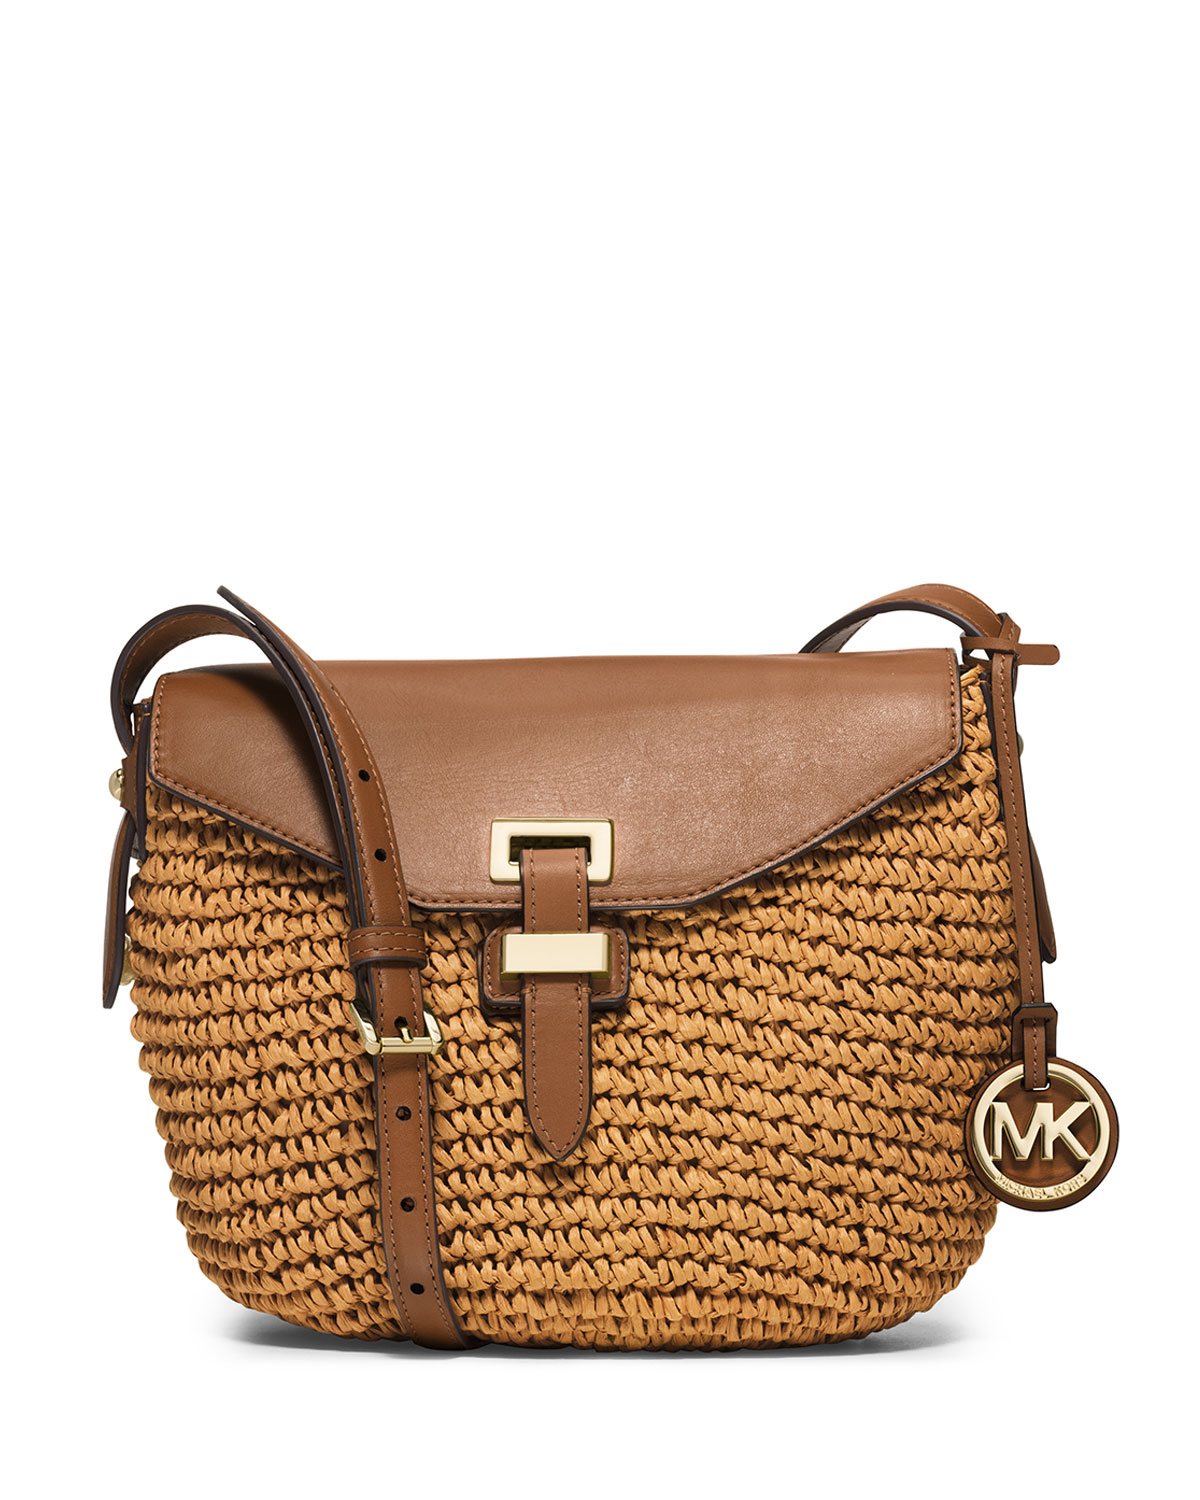 c3102da57c34 MICHAEL Michael Kors Naomi Medium Straw Messenger Bag, Walnut ...